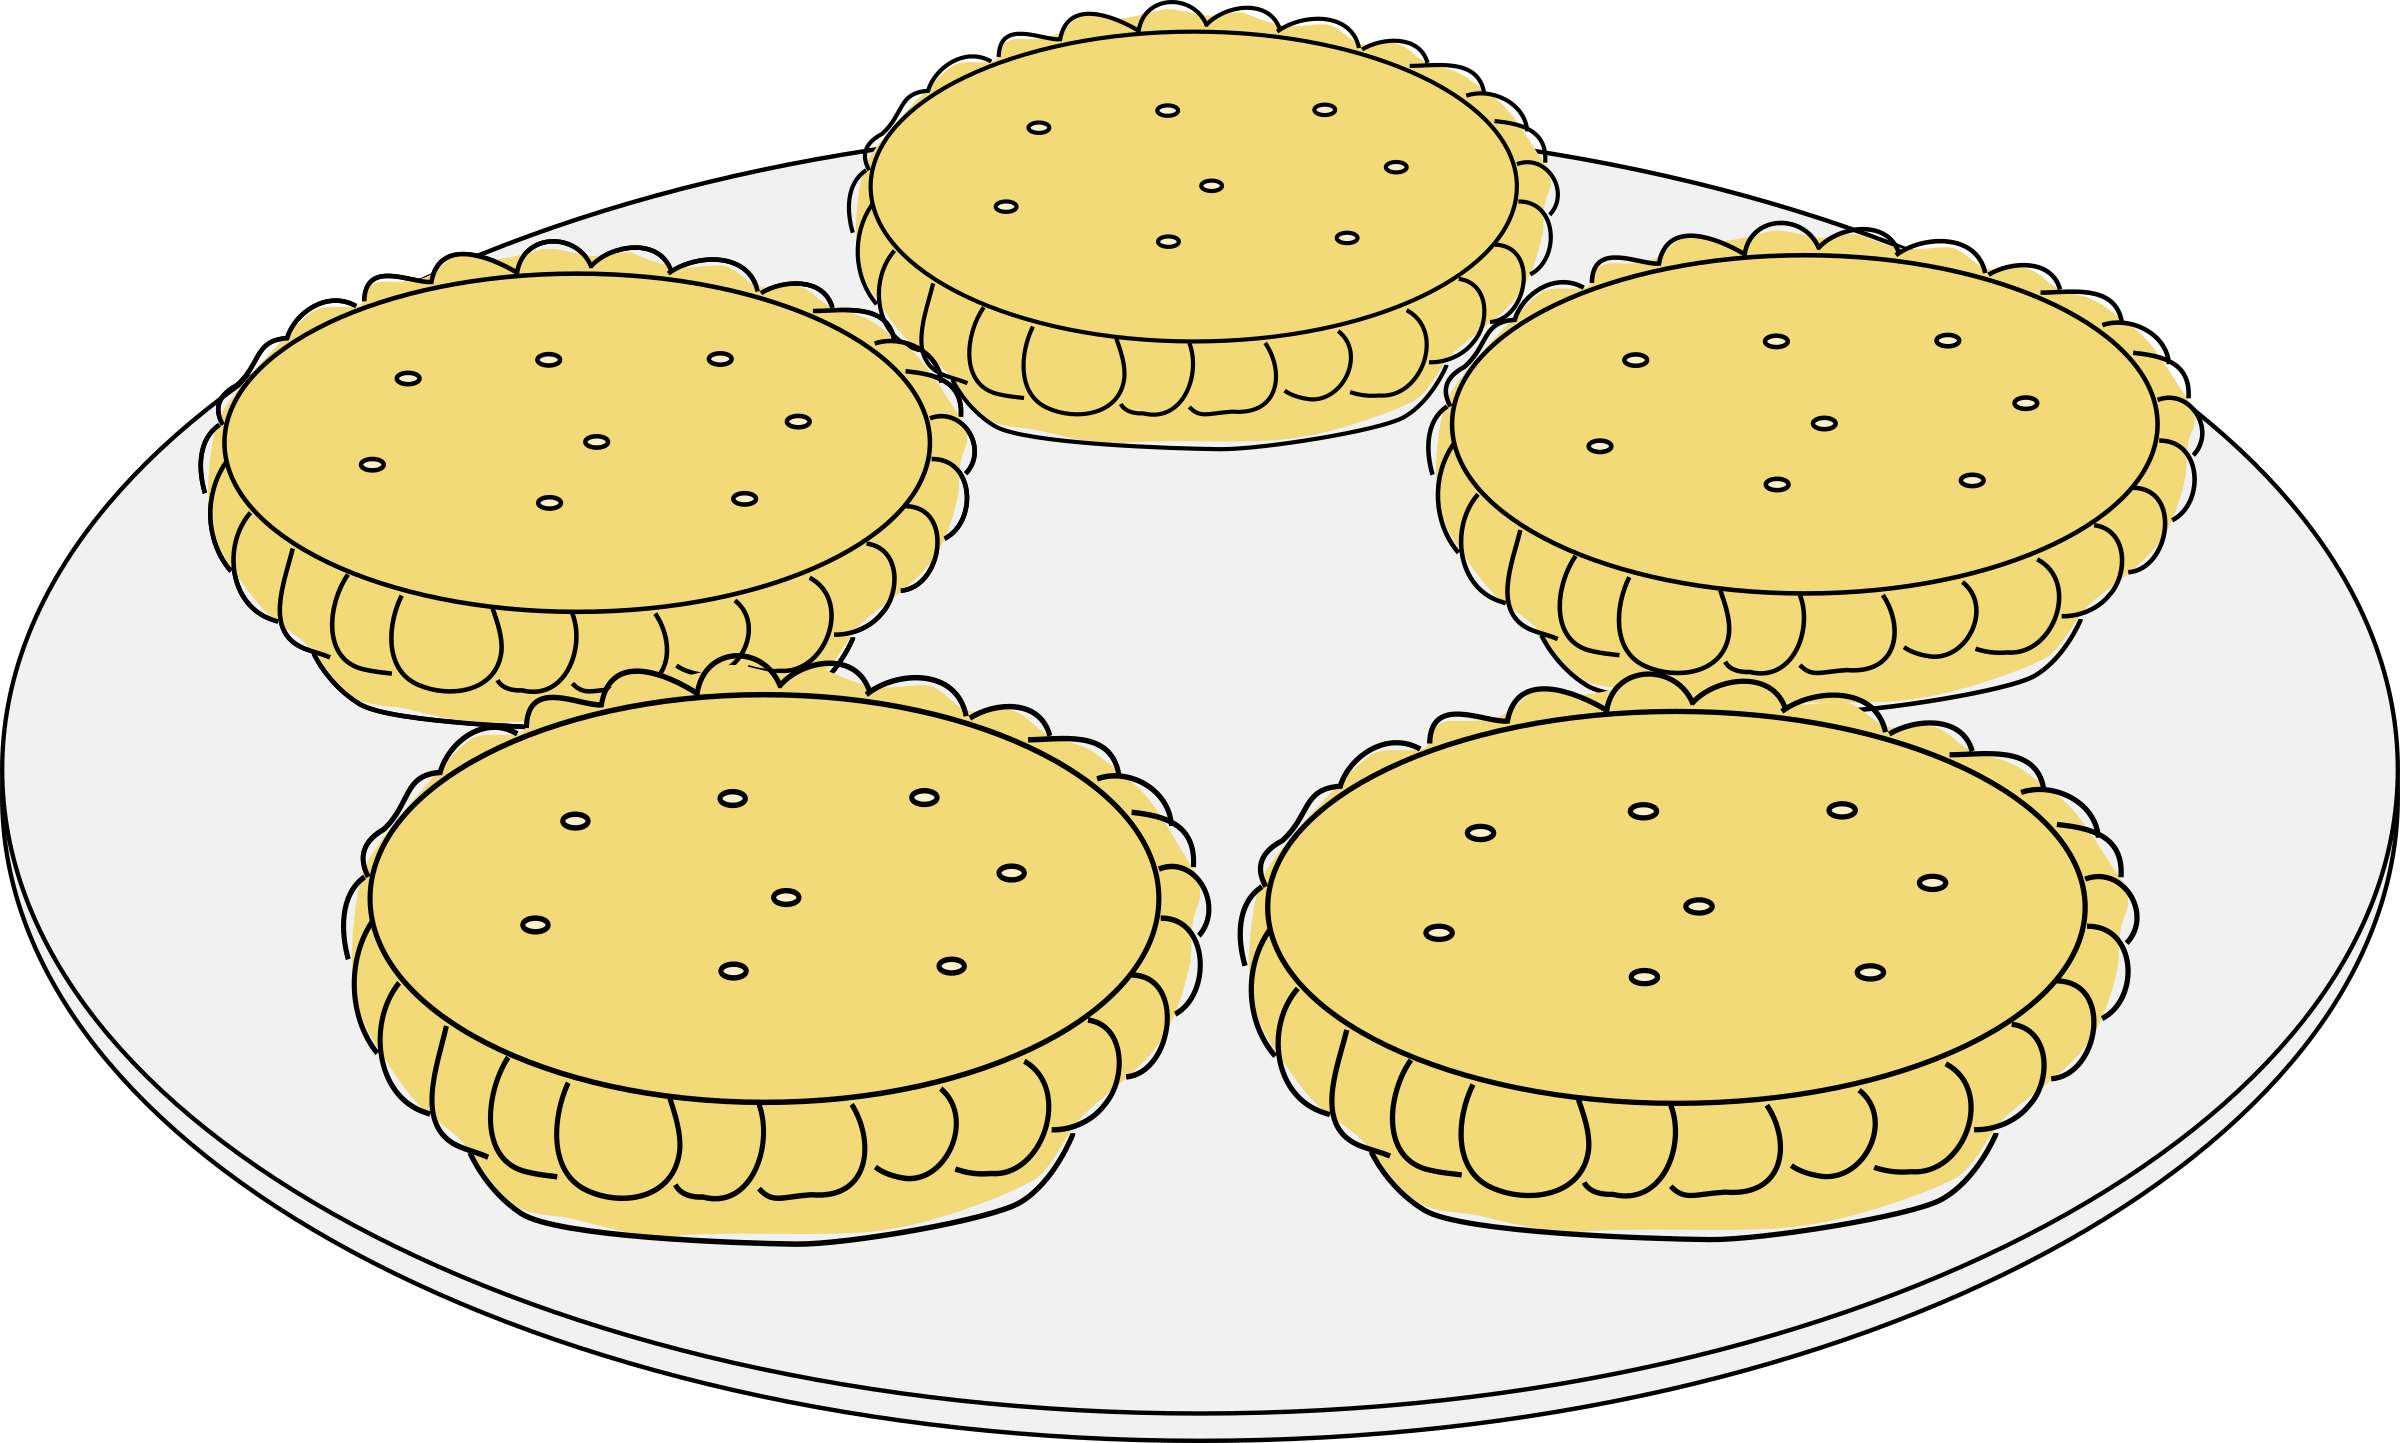 2400x1443 Apple Pie Slices Jpg Black And White Library Free